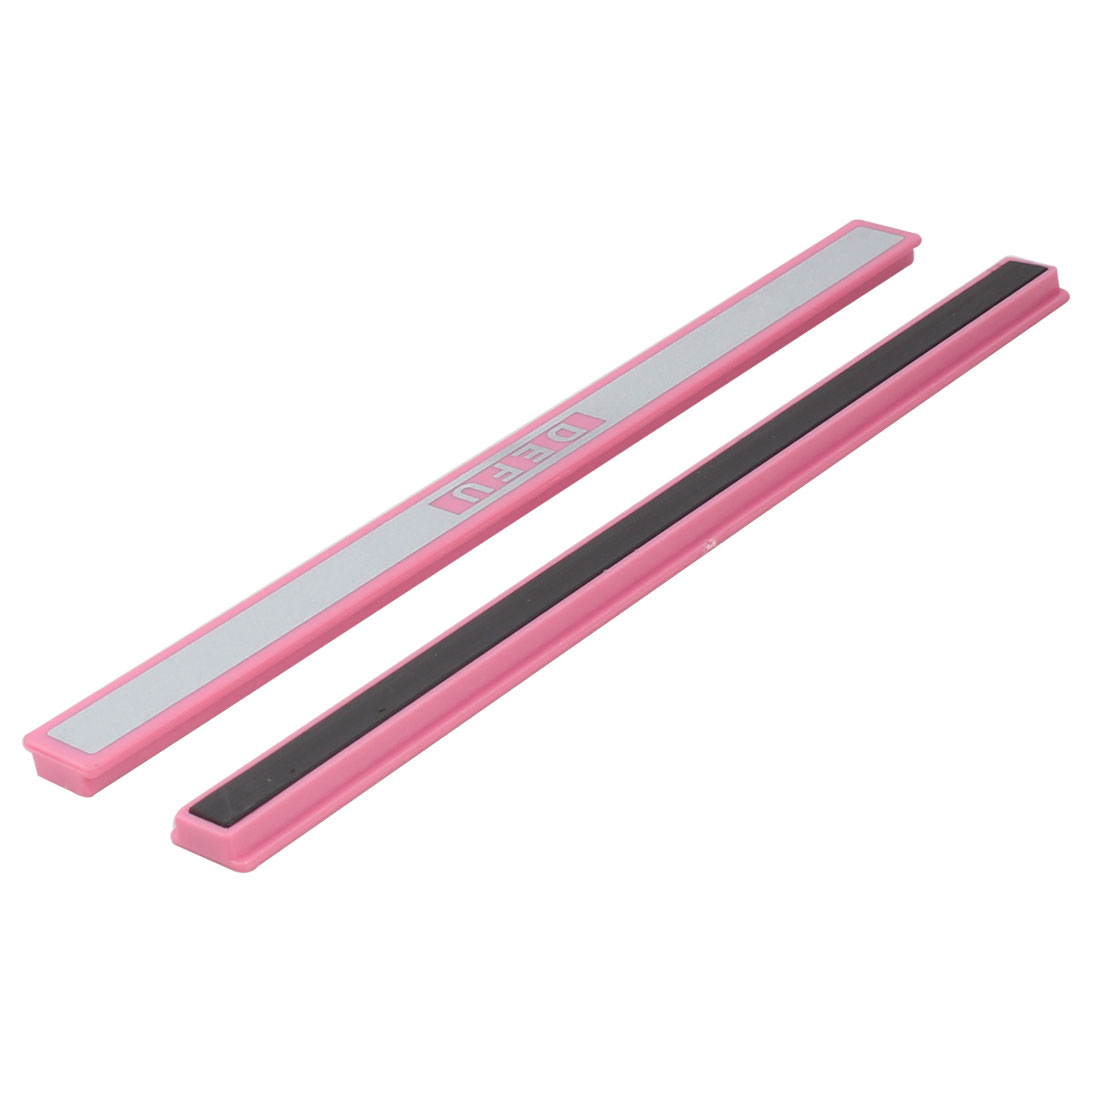 Office School Plastic Rectangular Shaped Appliances Magnetic Stripe Pink White 20cm Long 2 Pcs